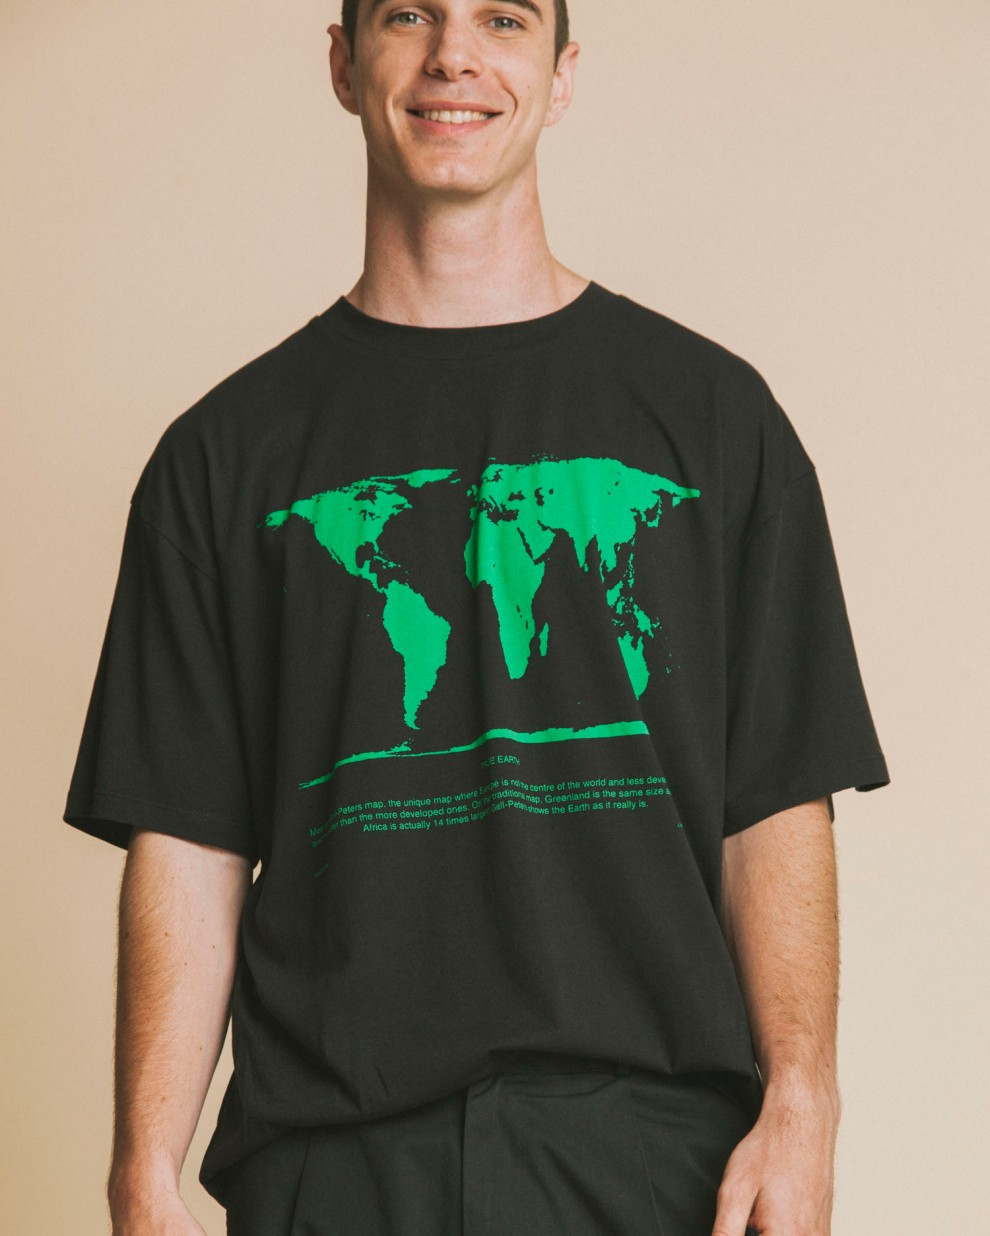 Peter's map T-shirt